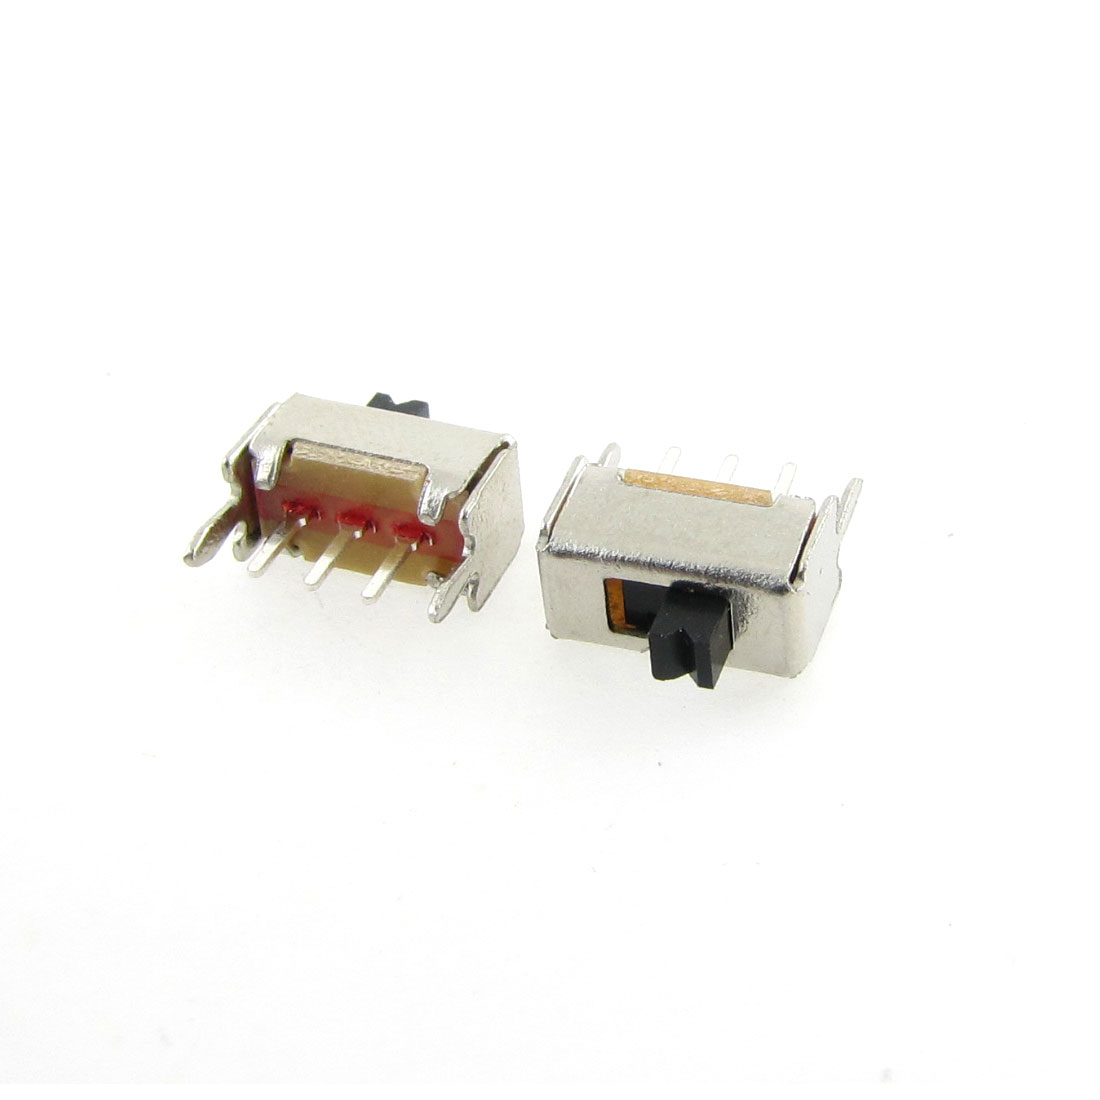 20 Pcs 3 Pin PCB 2 Position SPDT 1P2T Miniature Vertical Slide Switch SS12D07VG2